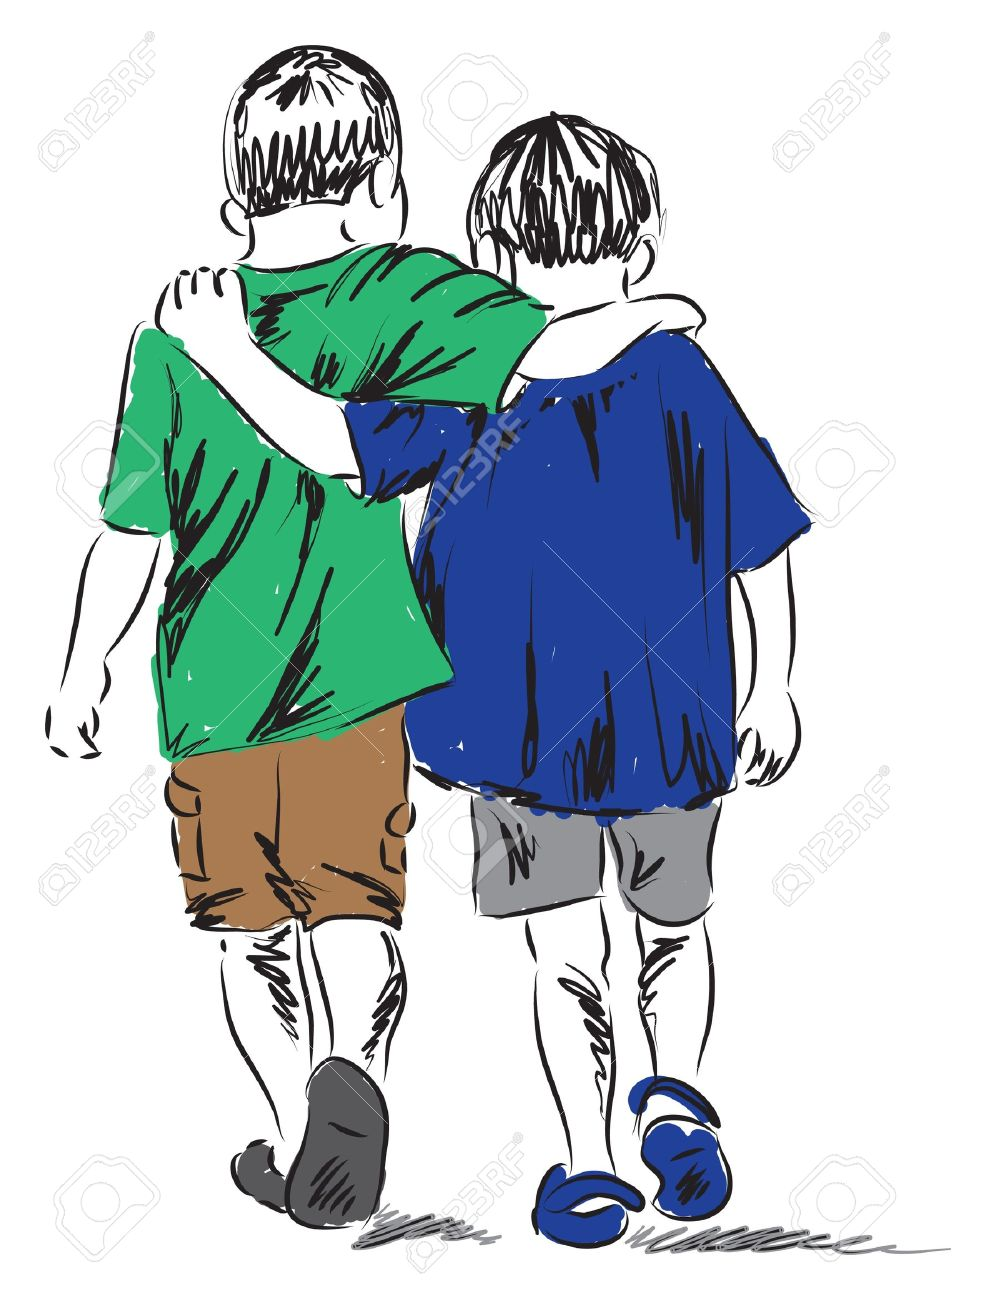 Friends Two Boys Walking Together Illustration Royalty Free.